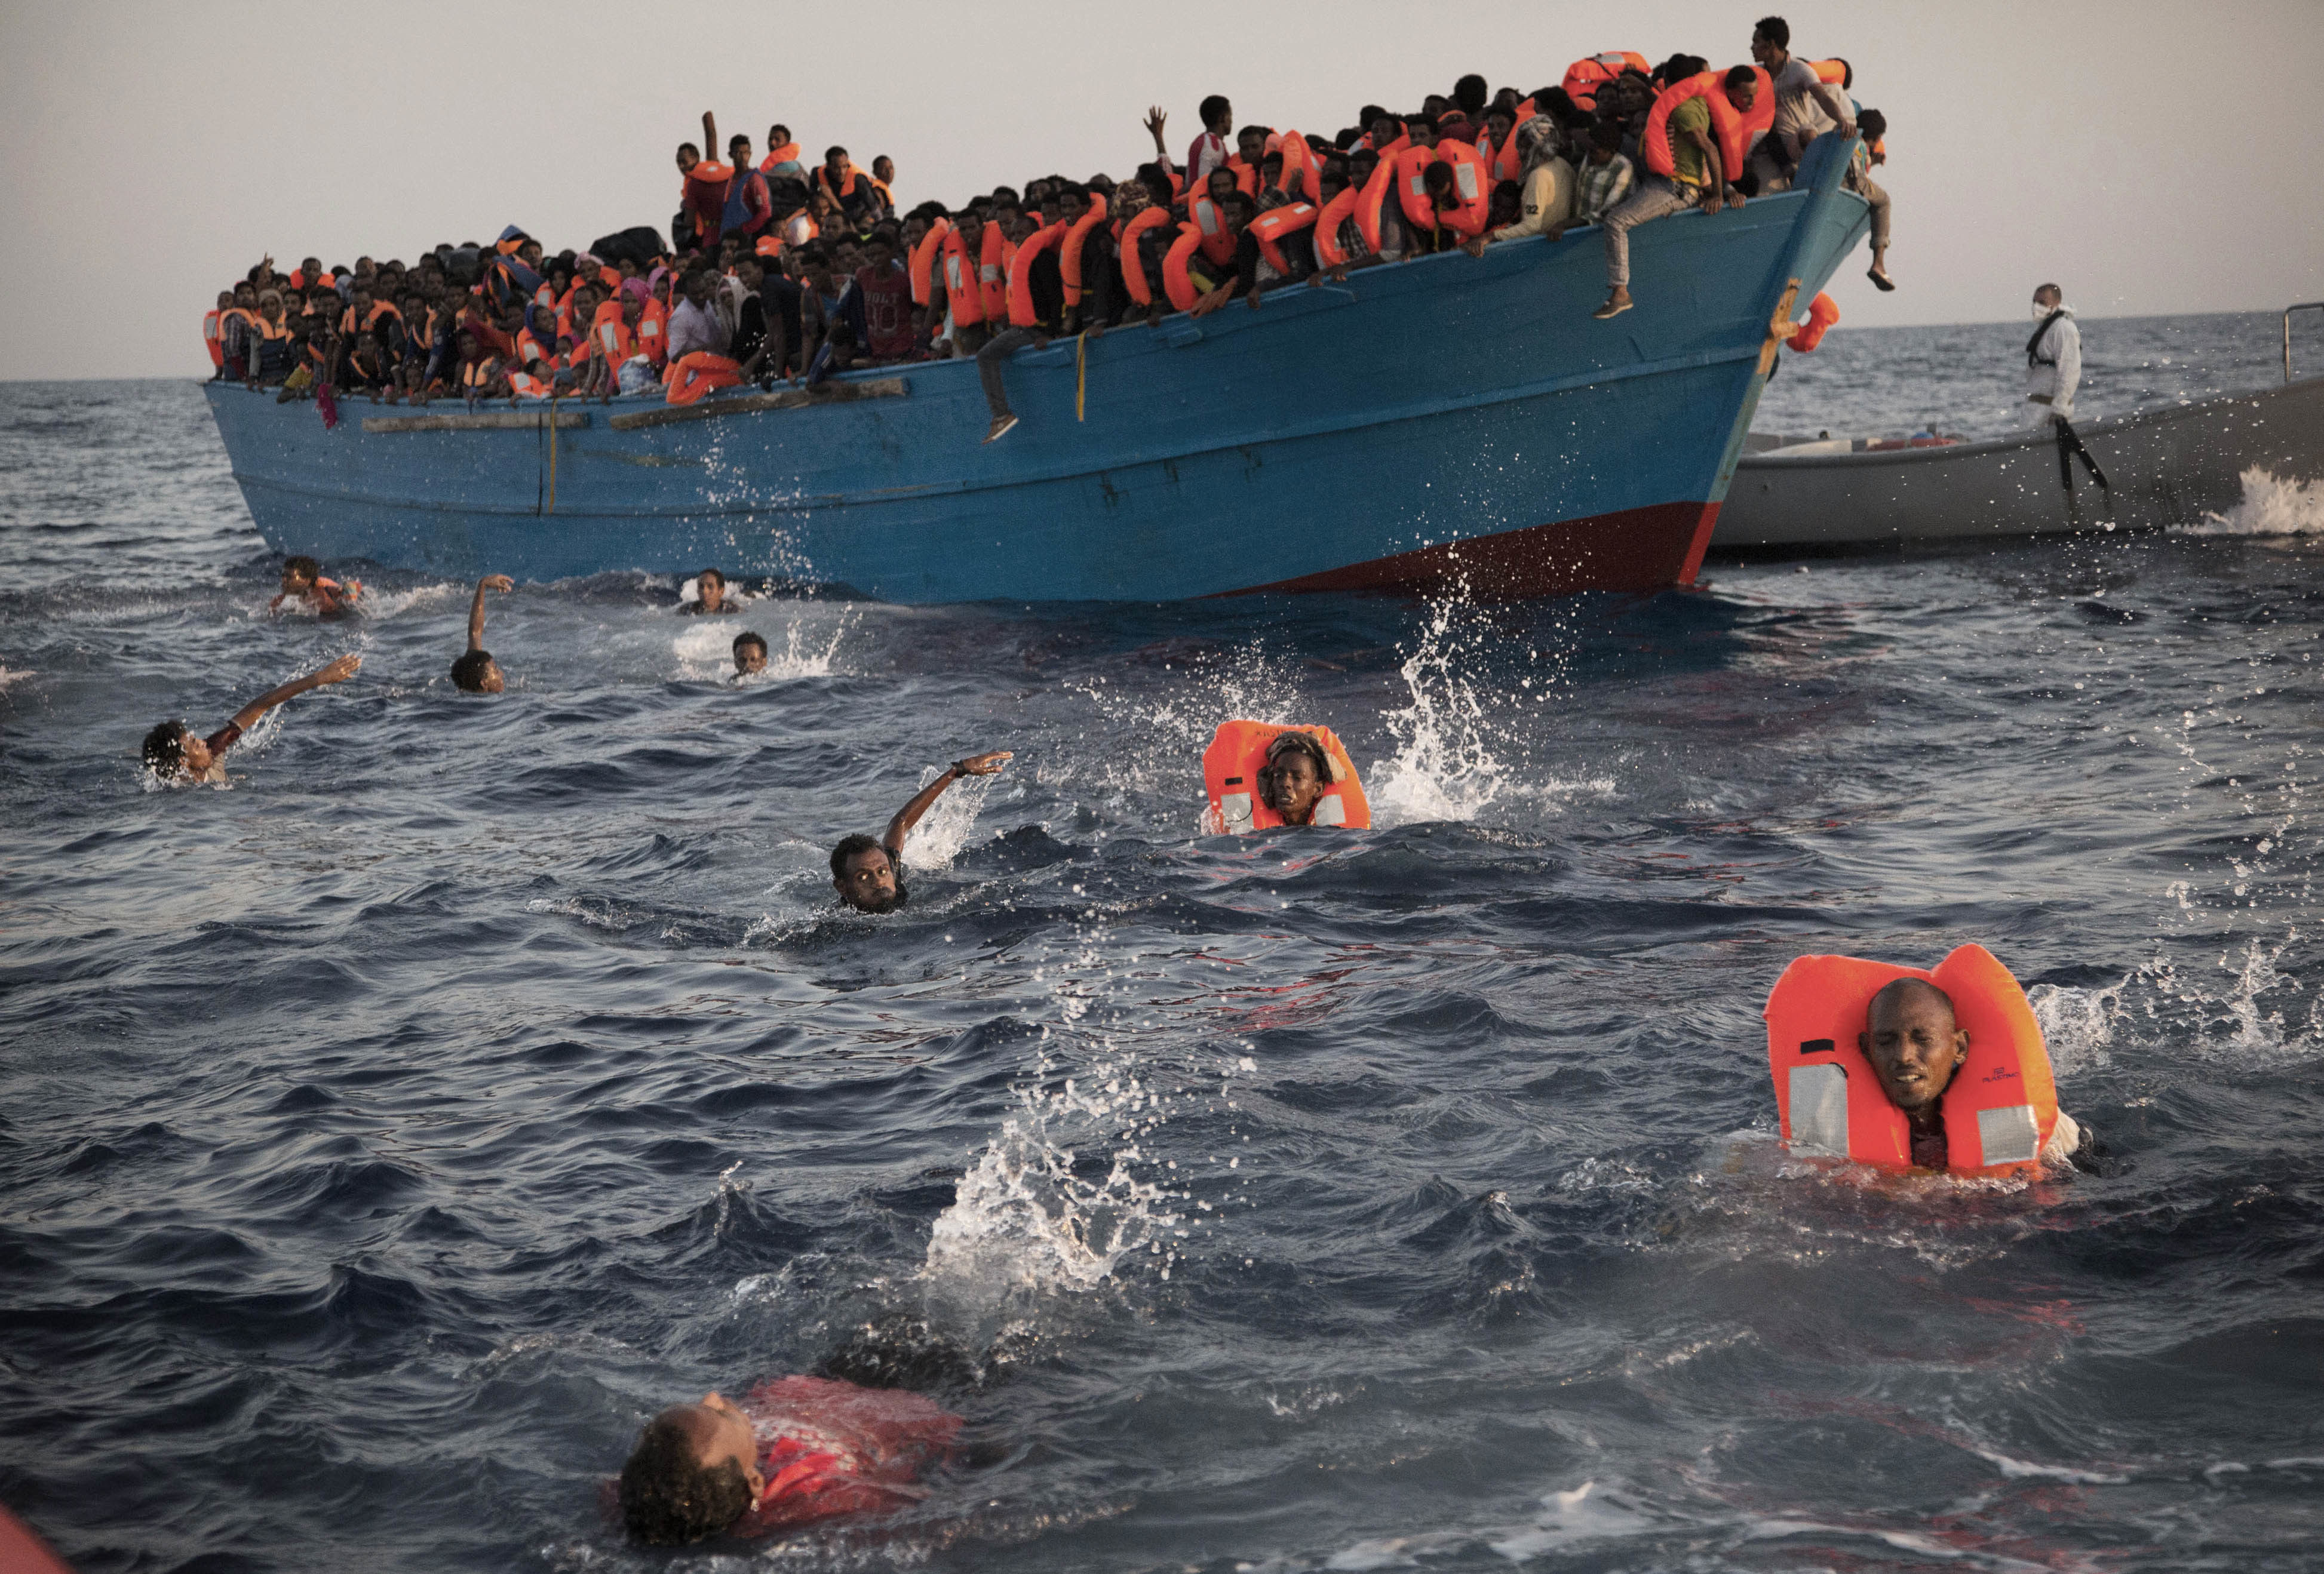 Migrants, most from Eritrea, jump into the water from a crowded wooden boat as they are helped by members of an NGO during a rescue operation in the Mediterranean sea near Libya on Aug. 29, 2016.  (AP Photo/Emilio Morenatti)